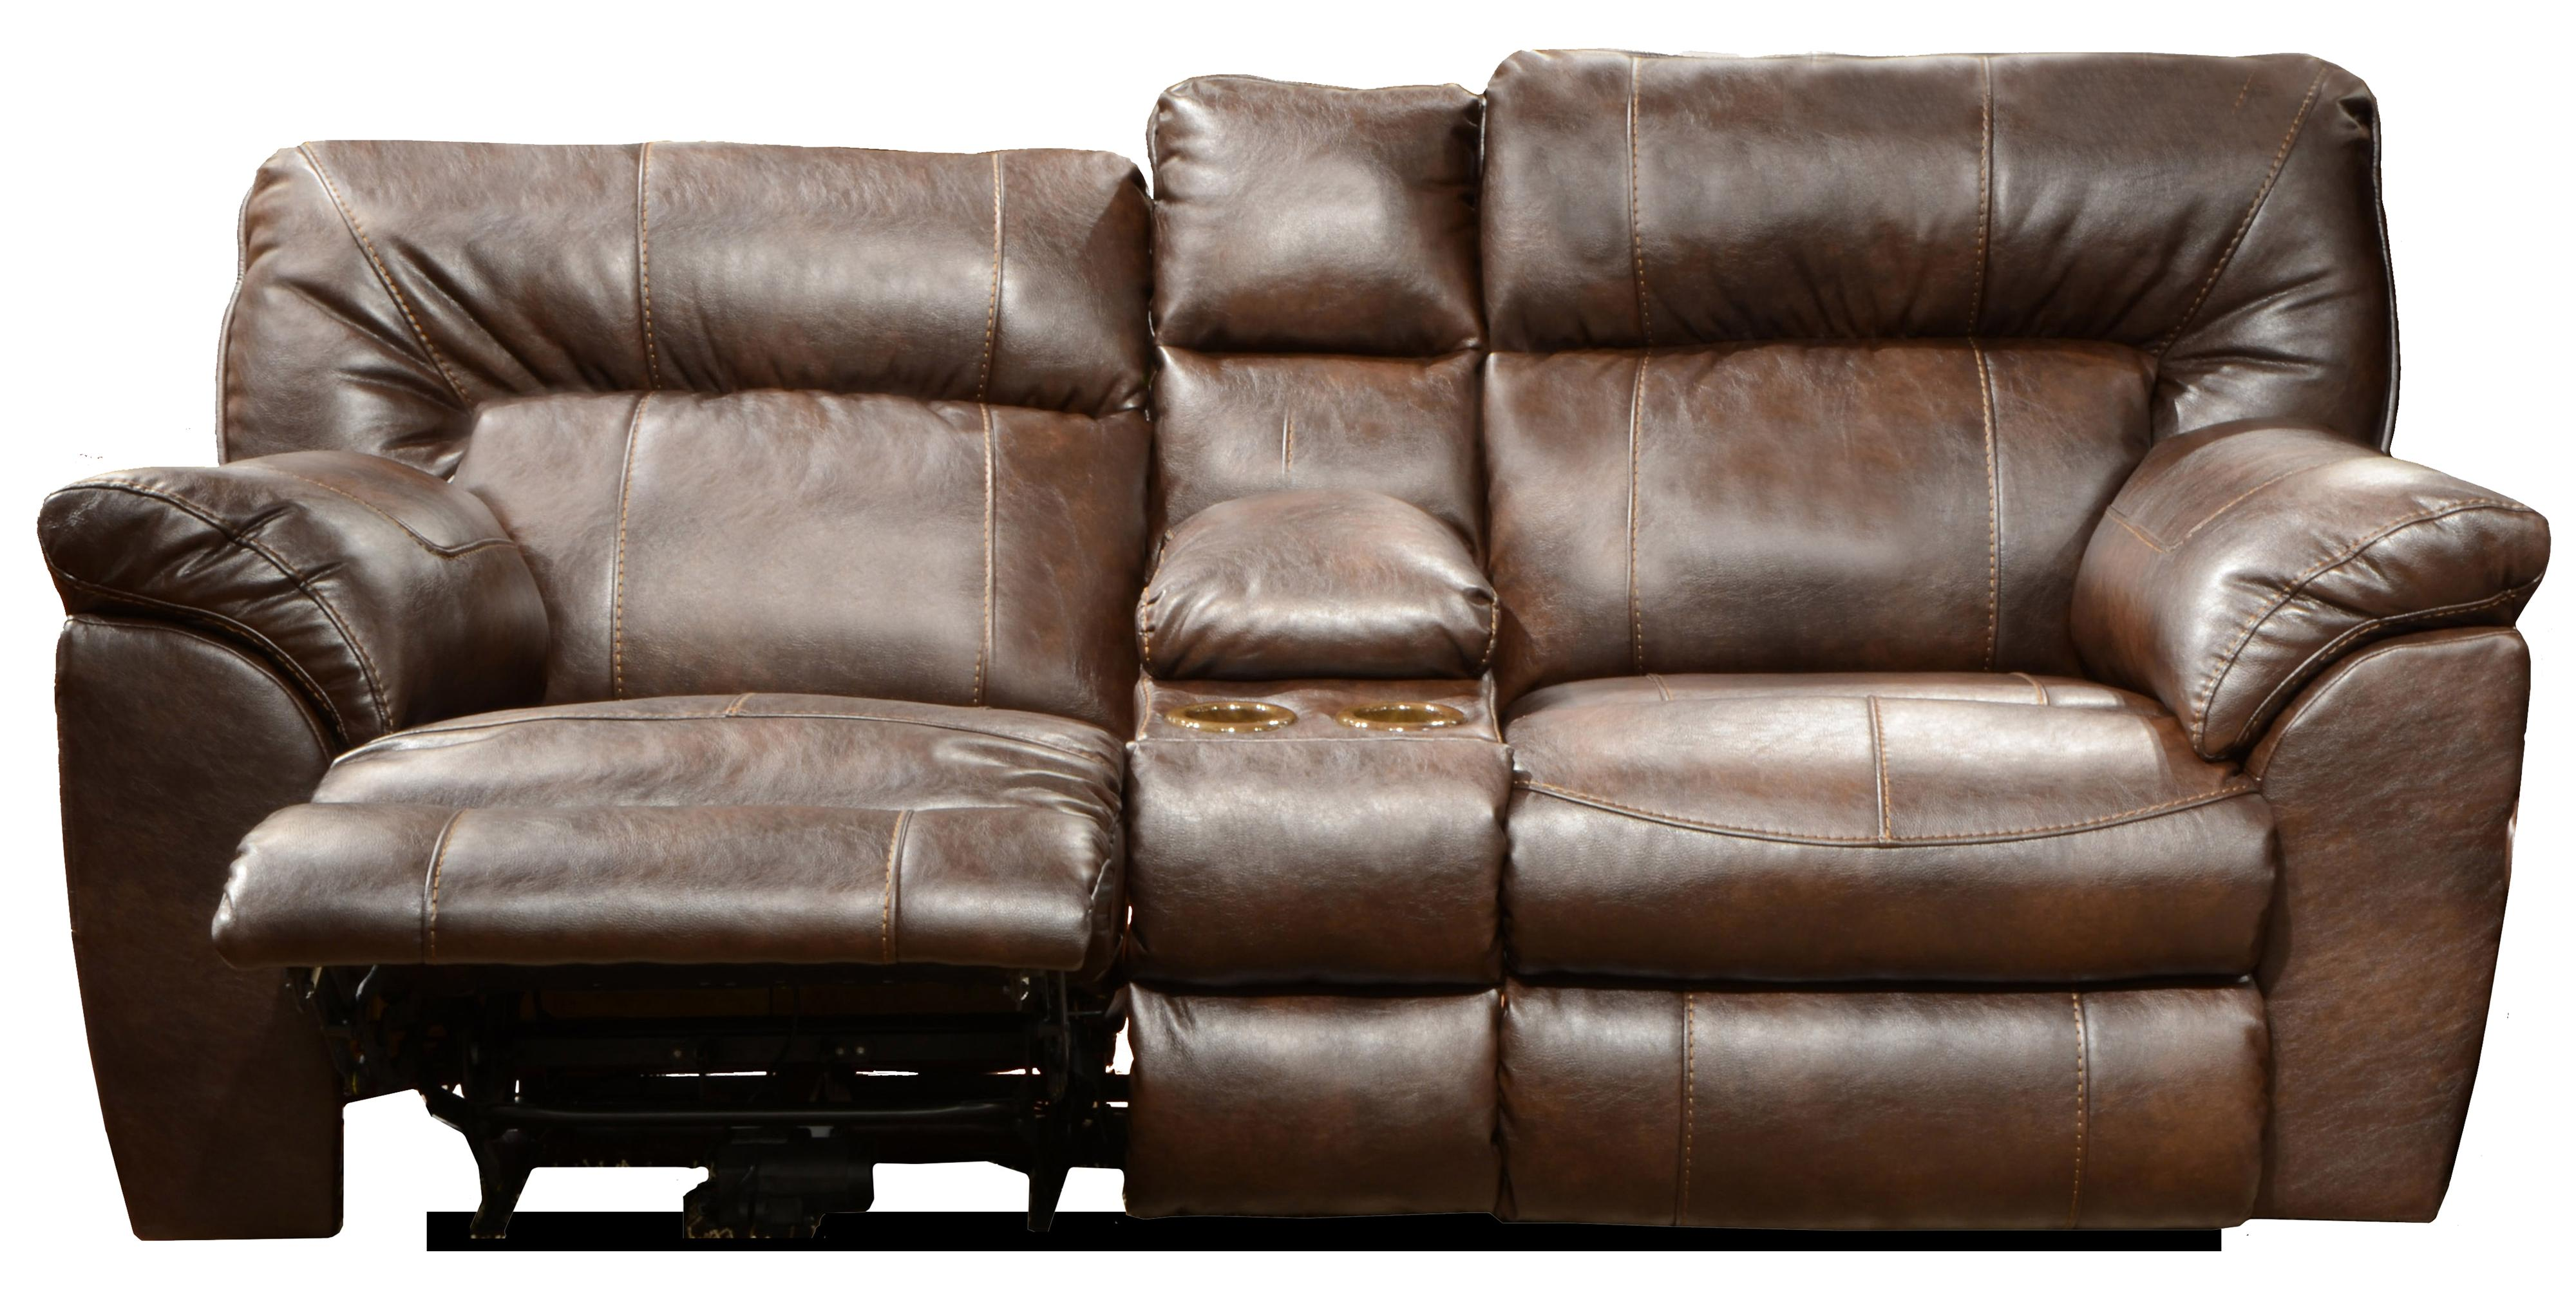 Power Extra Wide Reclining Console Loveseat With Storage And Cup Holders By Catnapper Wolf And